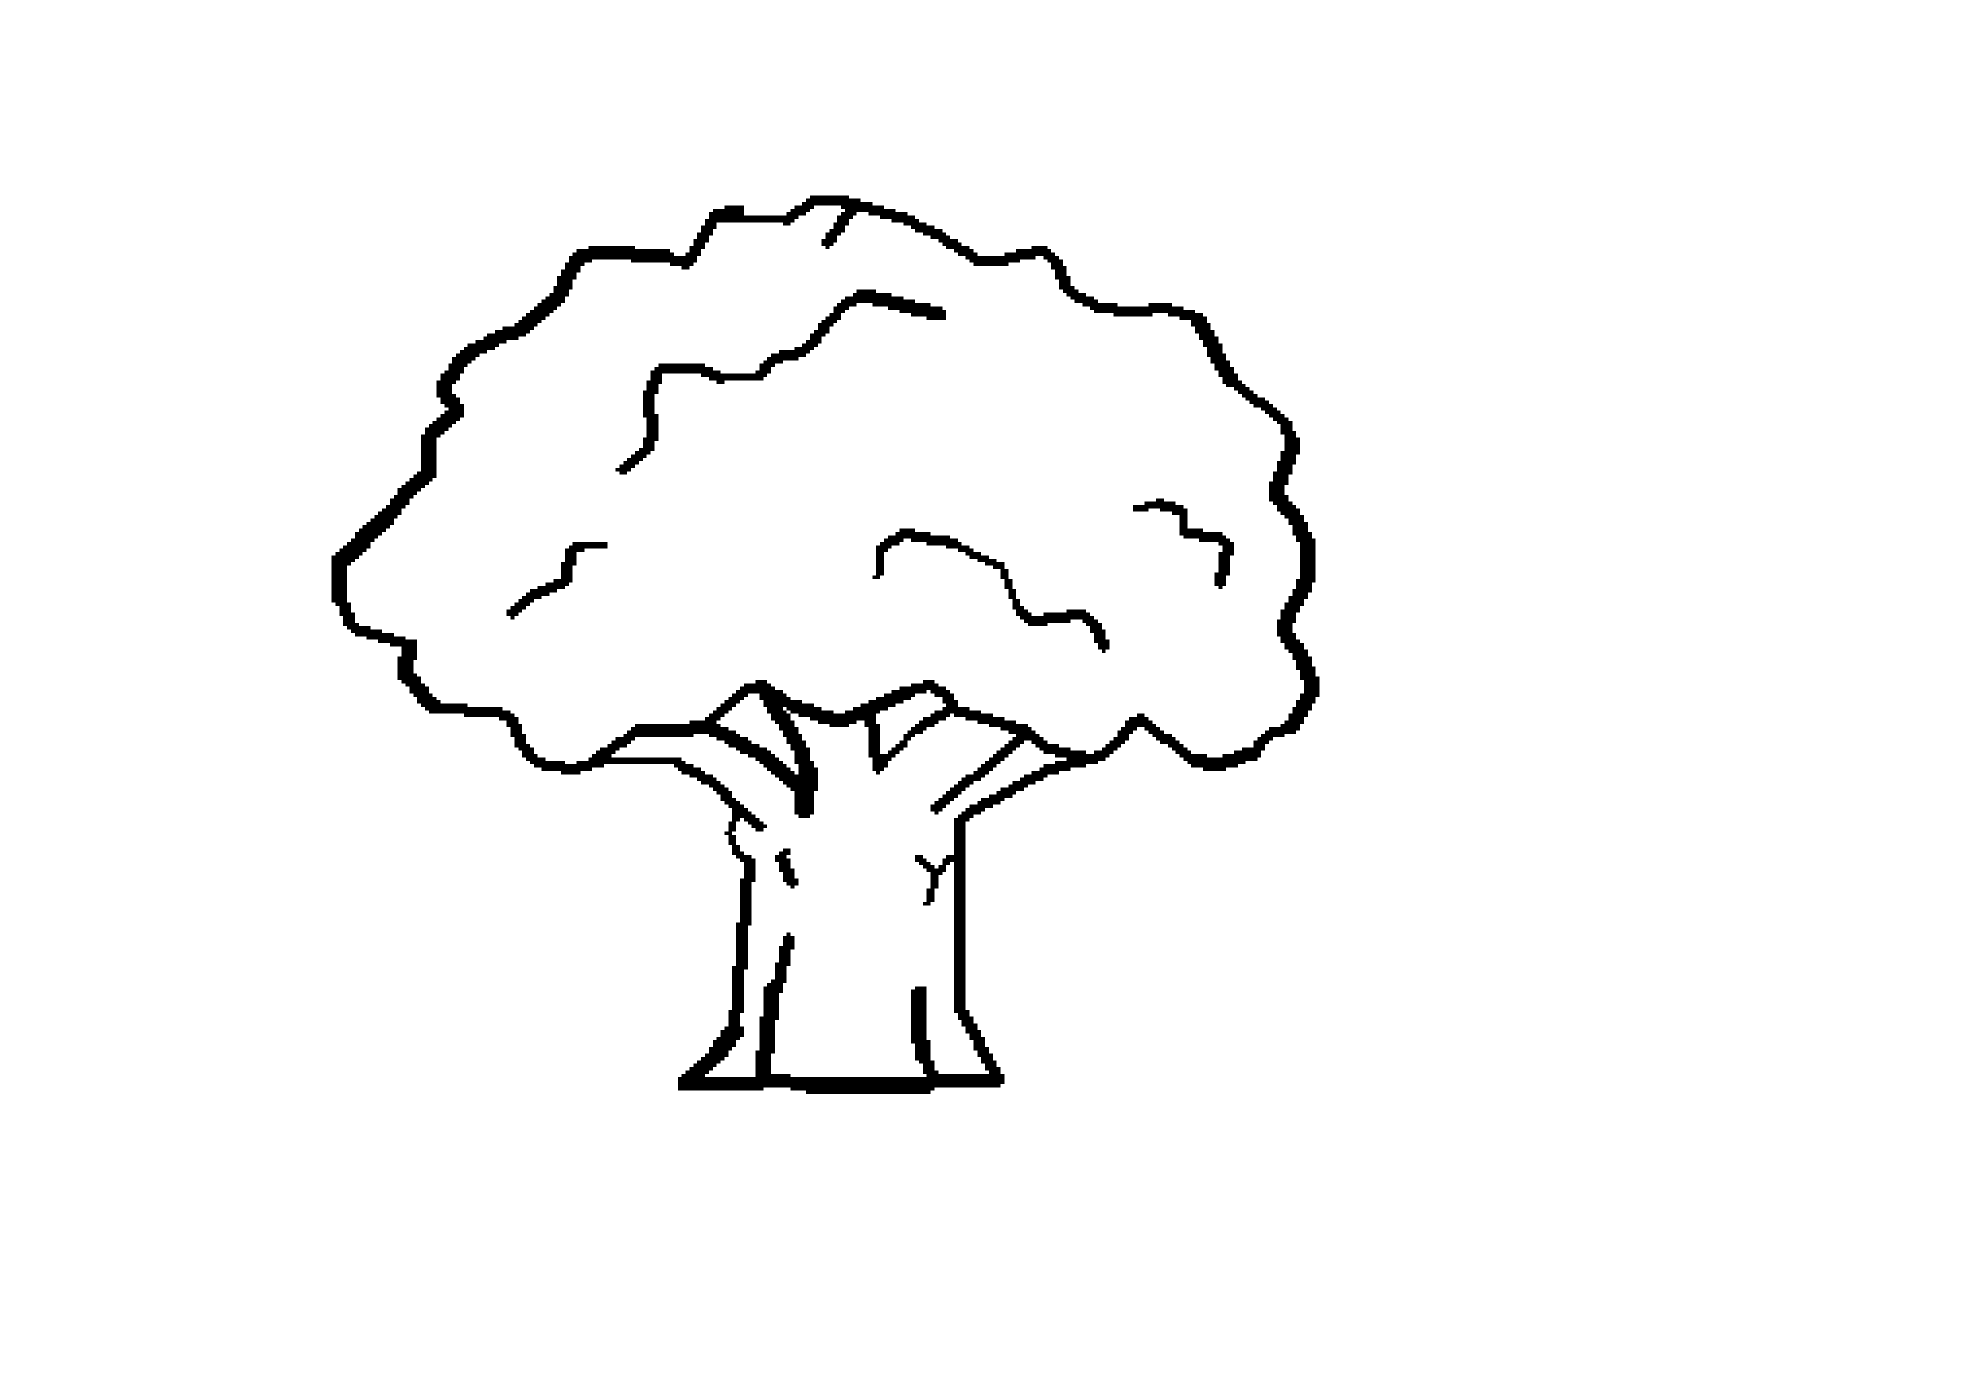 Tree Clipart Black And White Clipart Bes-Tree Clipart Black And White Clipart Best-13